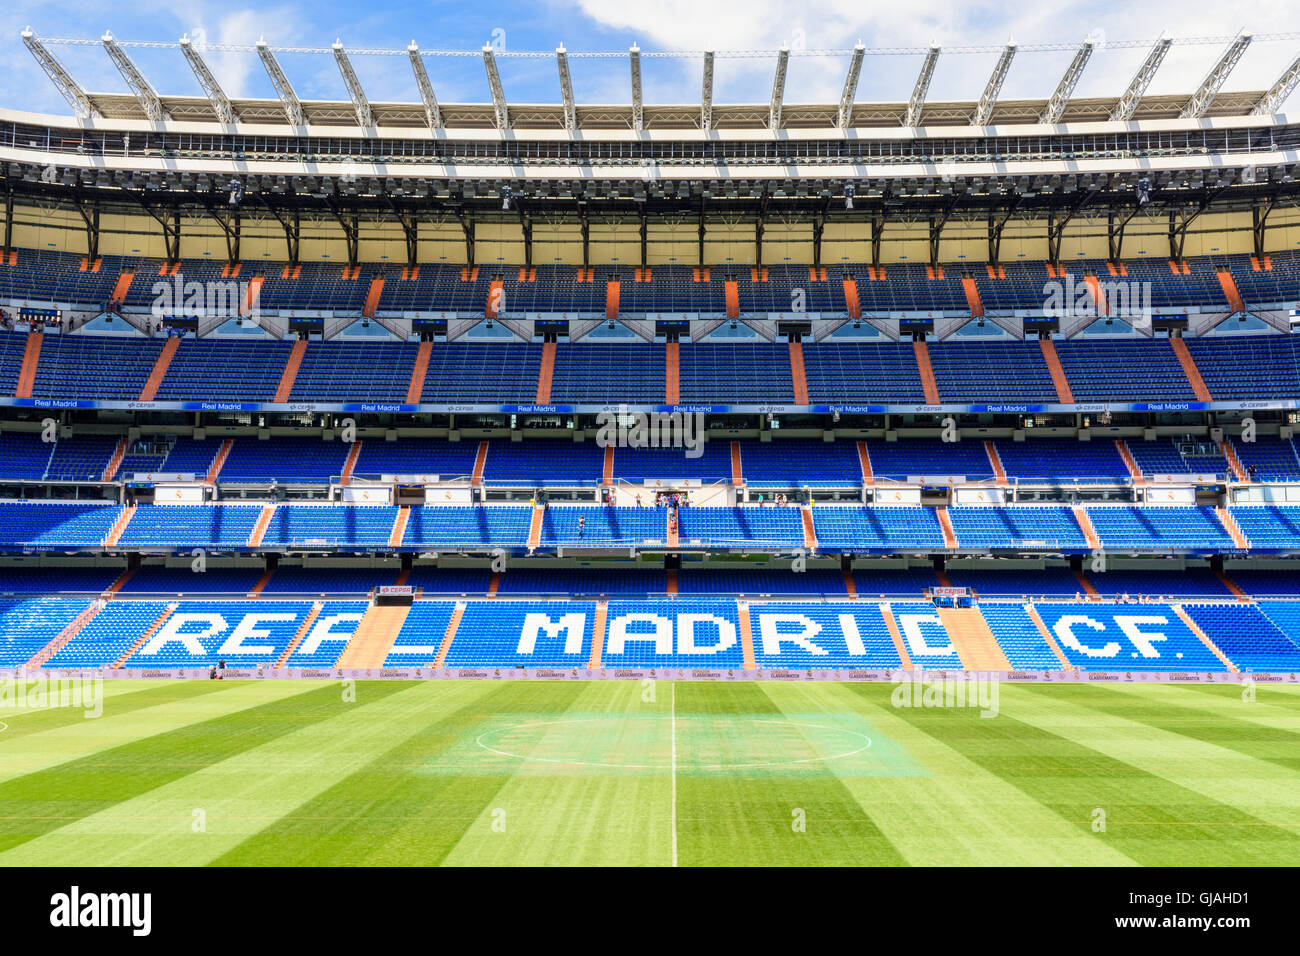 Stand and pitch at the Santiago Bernabeu Stadium, home of Real Madrid, Chamartin, Madrid, Spain - Stock Image